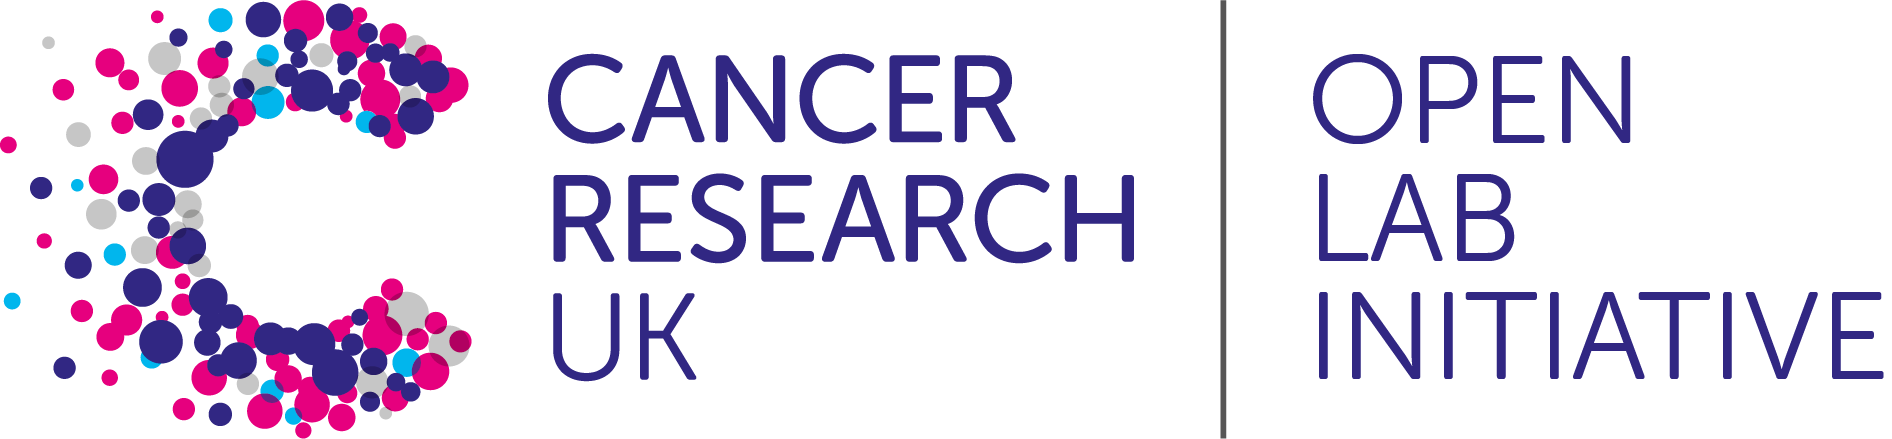 Cancer Research UK Open Lab initiative logo